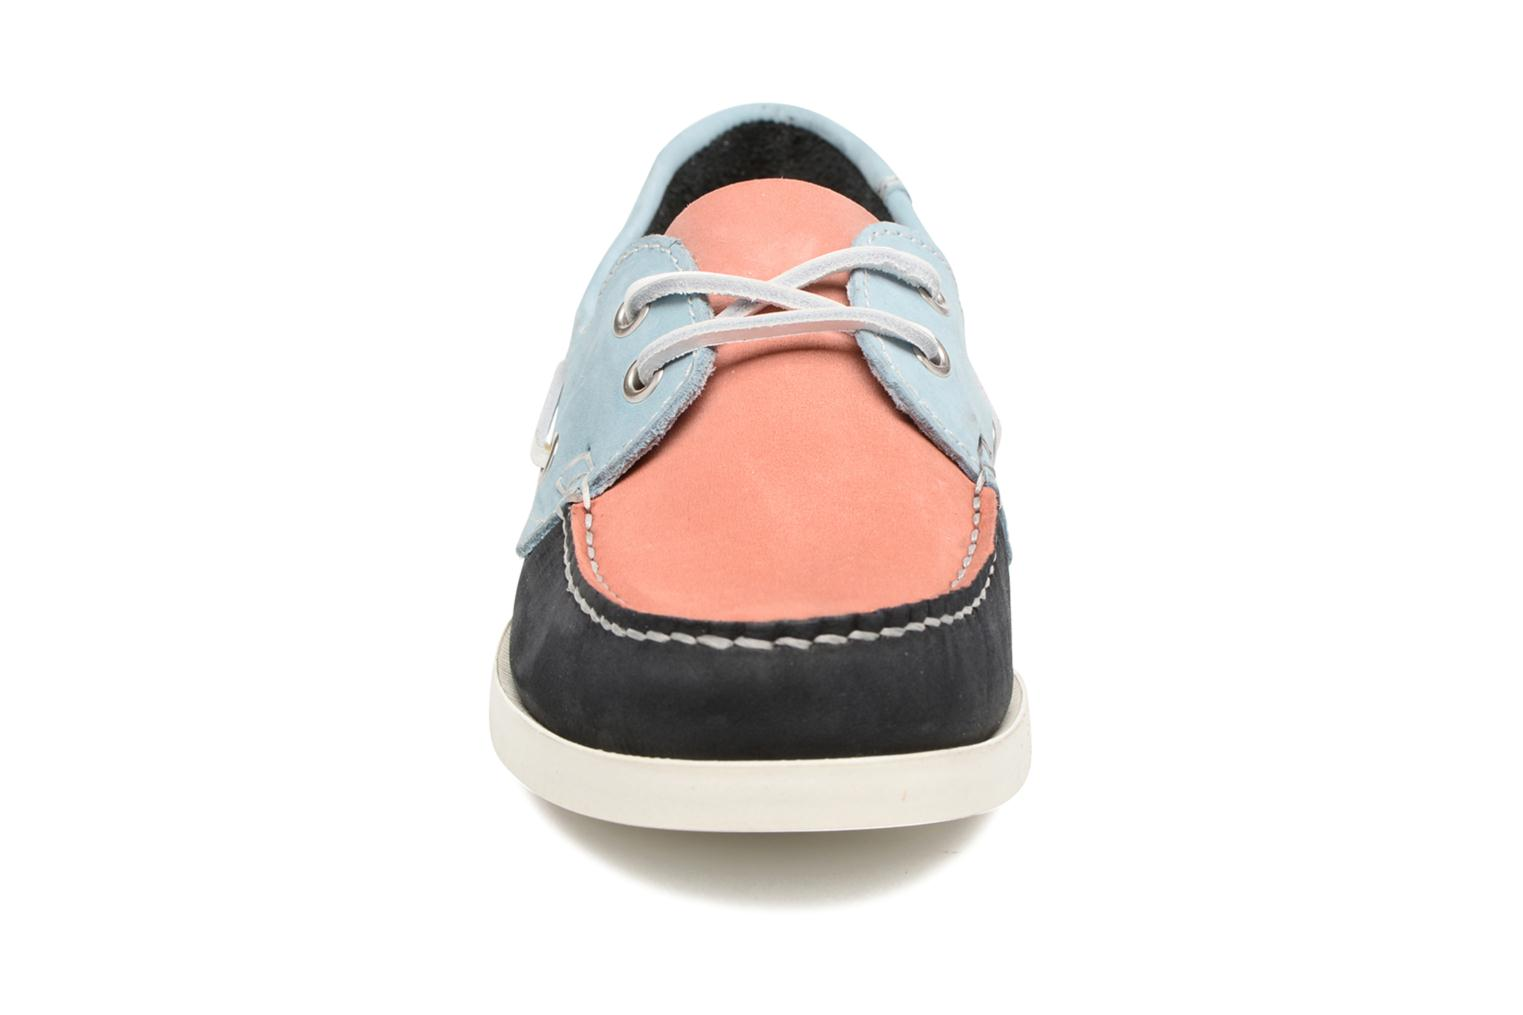 Stateau Nubuck mix rose/ciel/navy